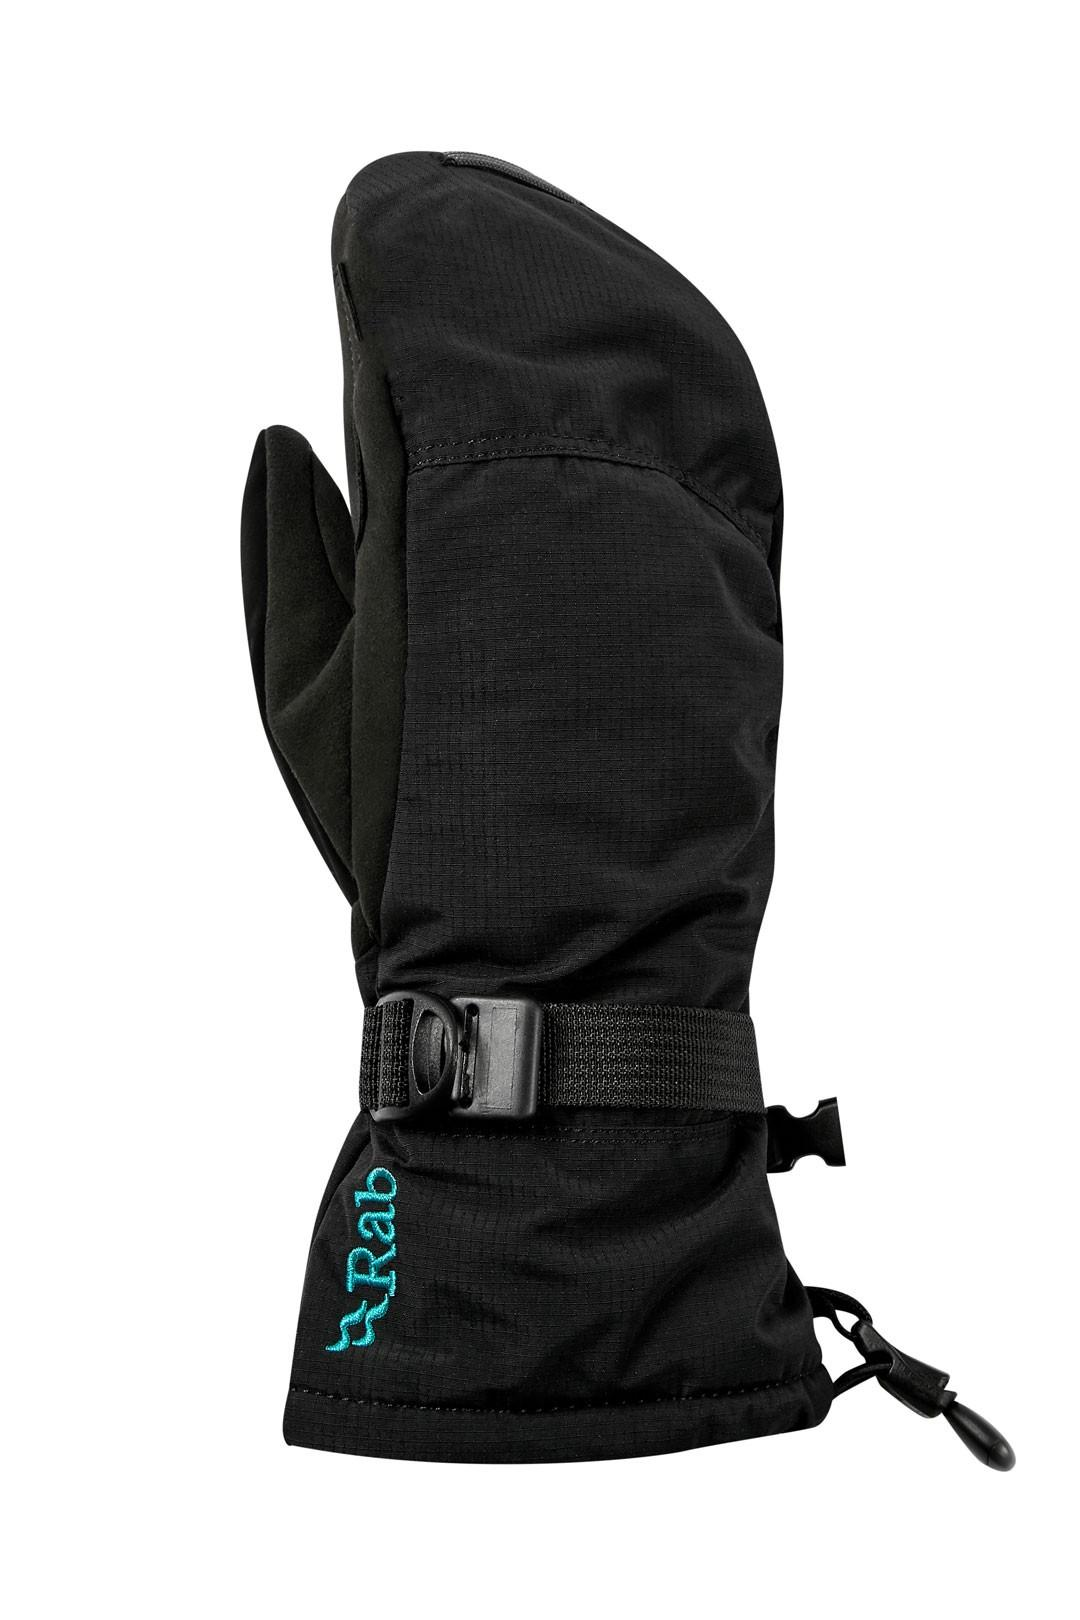 Rab Storm Mitt Womens - Black